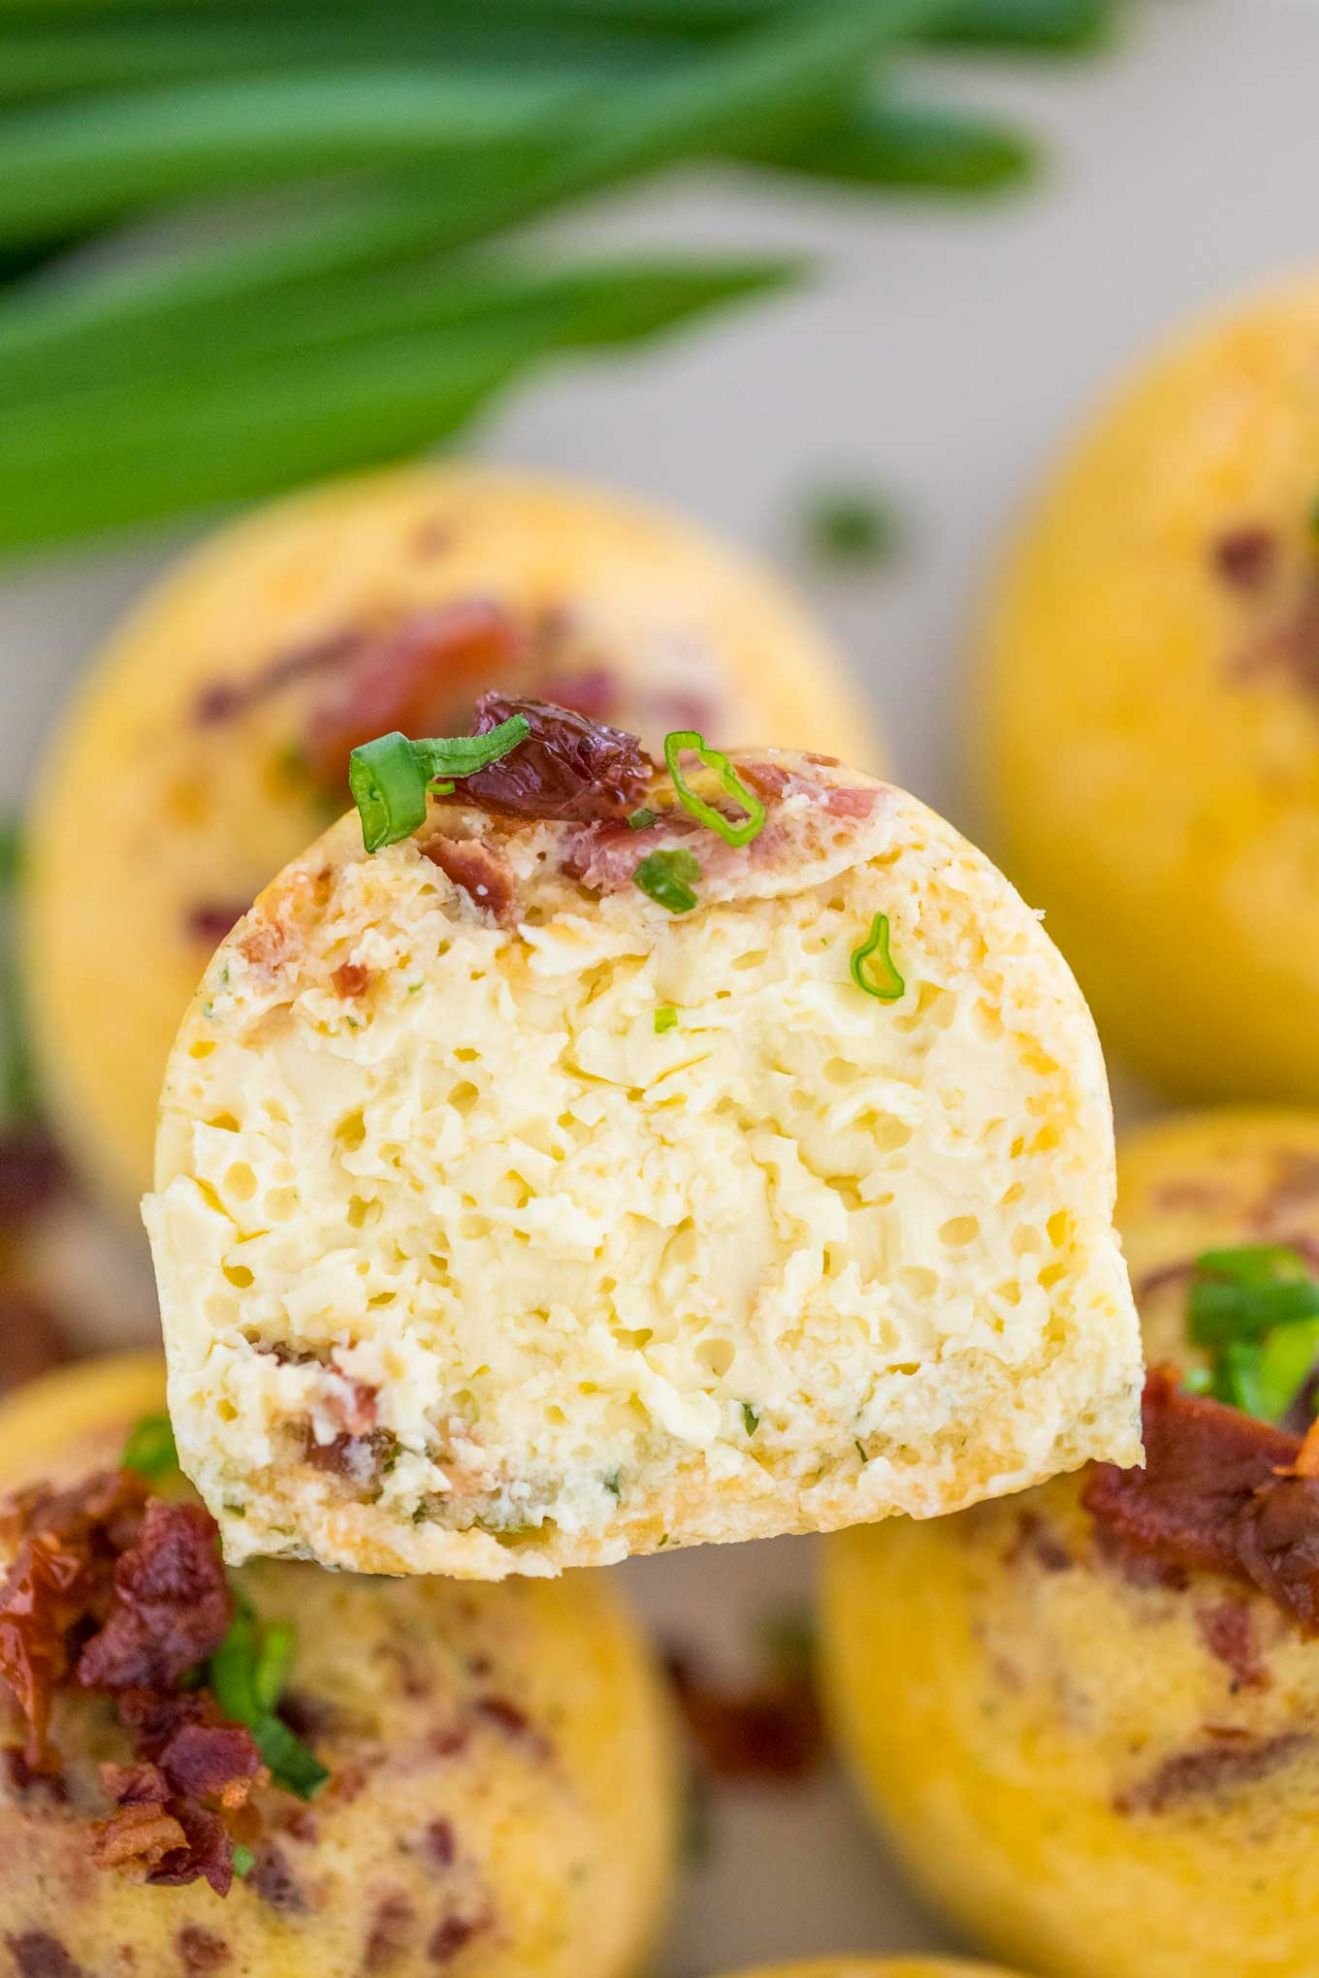 Best Instant Pot Egg Bites - Recipes Egg Bites